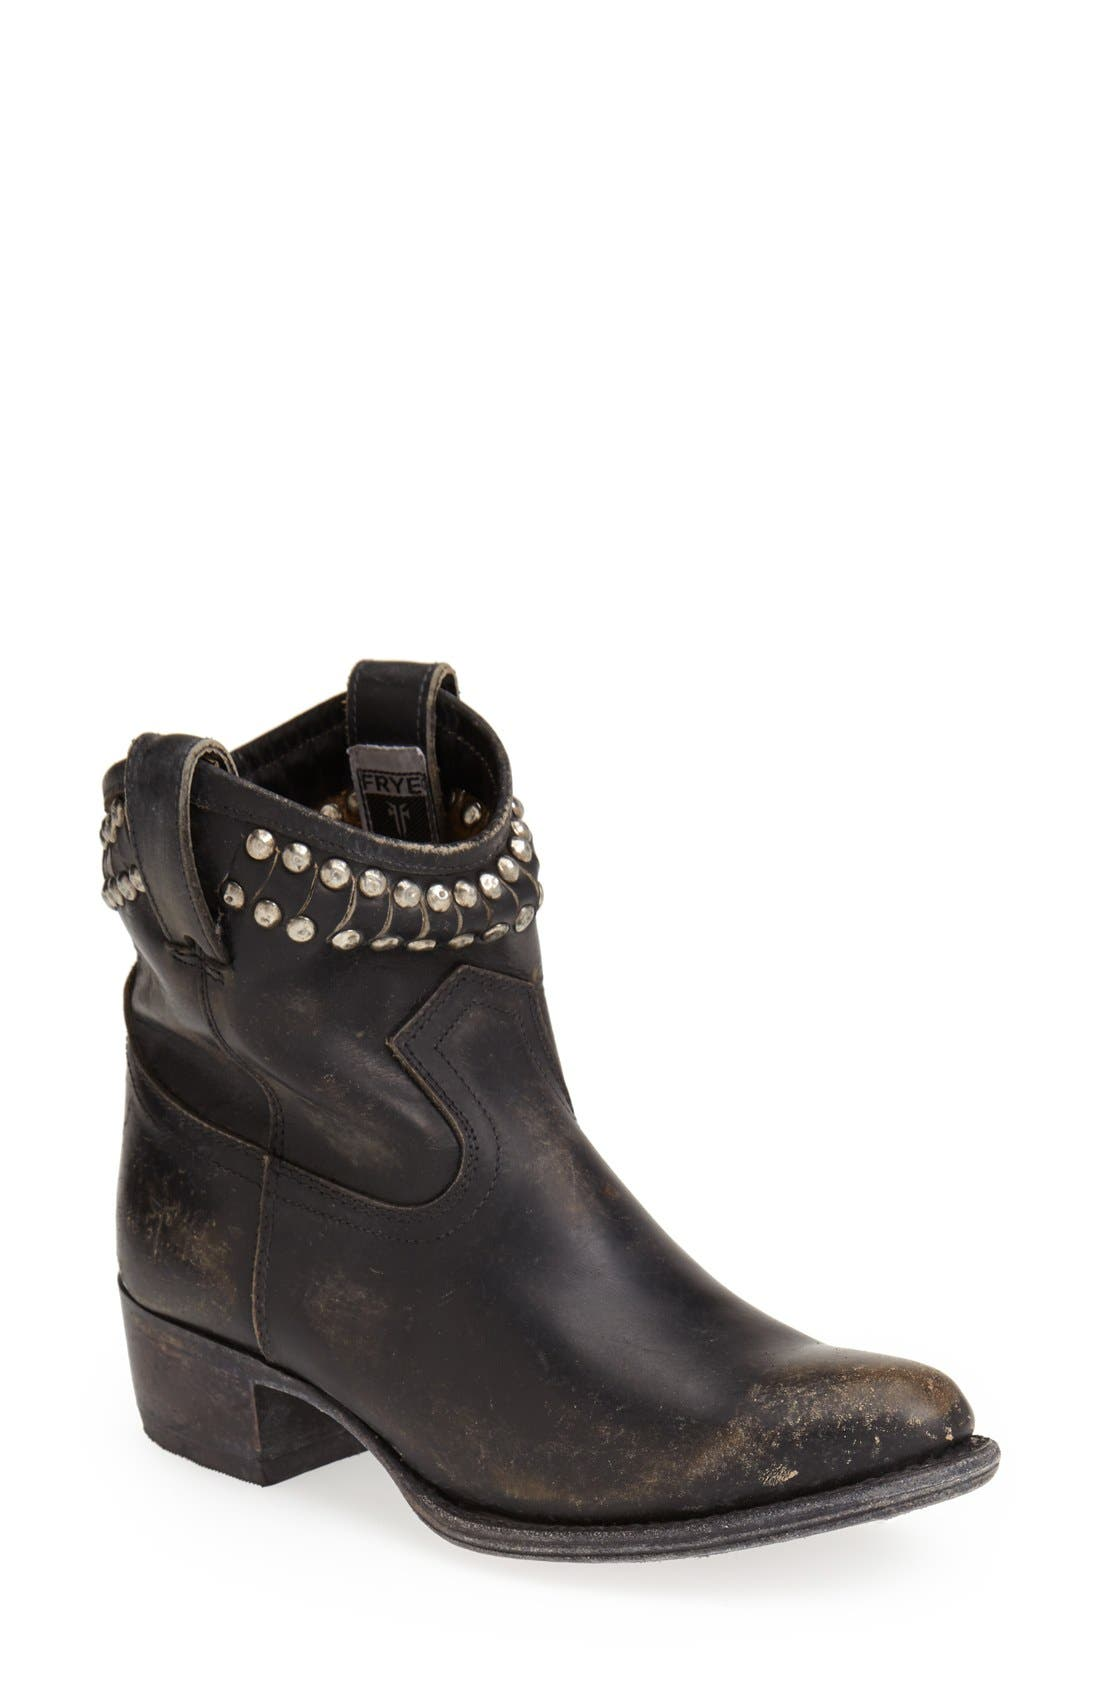 Alternate Image 1 Selected - Frye 'Diana' Cut & Studded Leather Short Boot (Women)